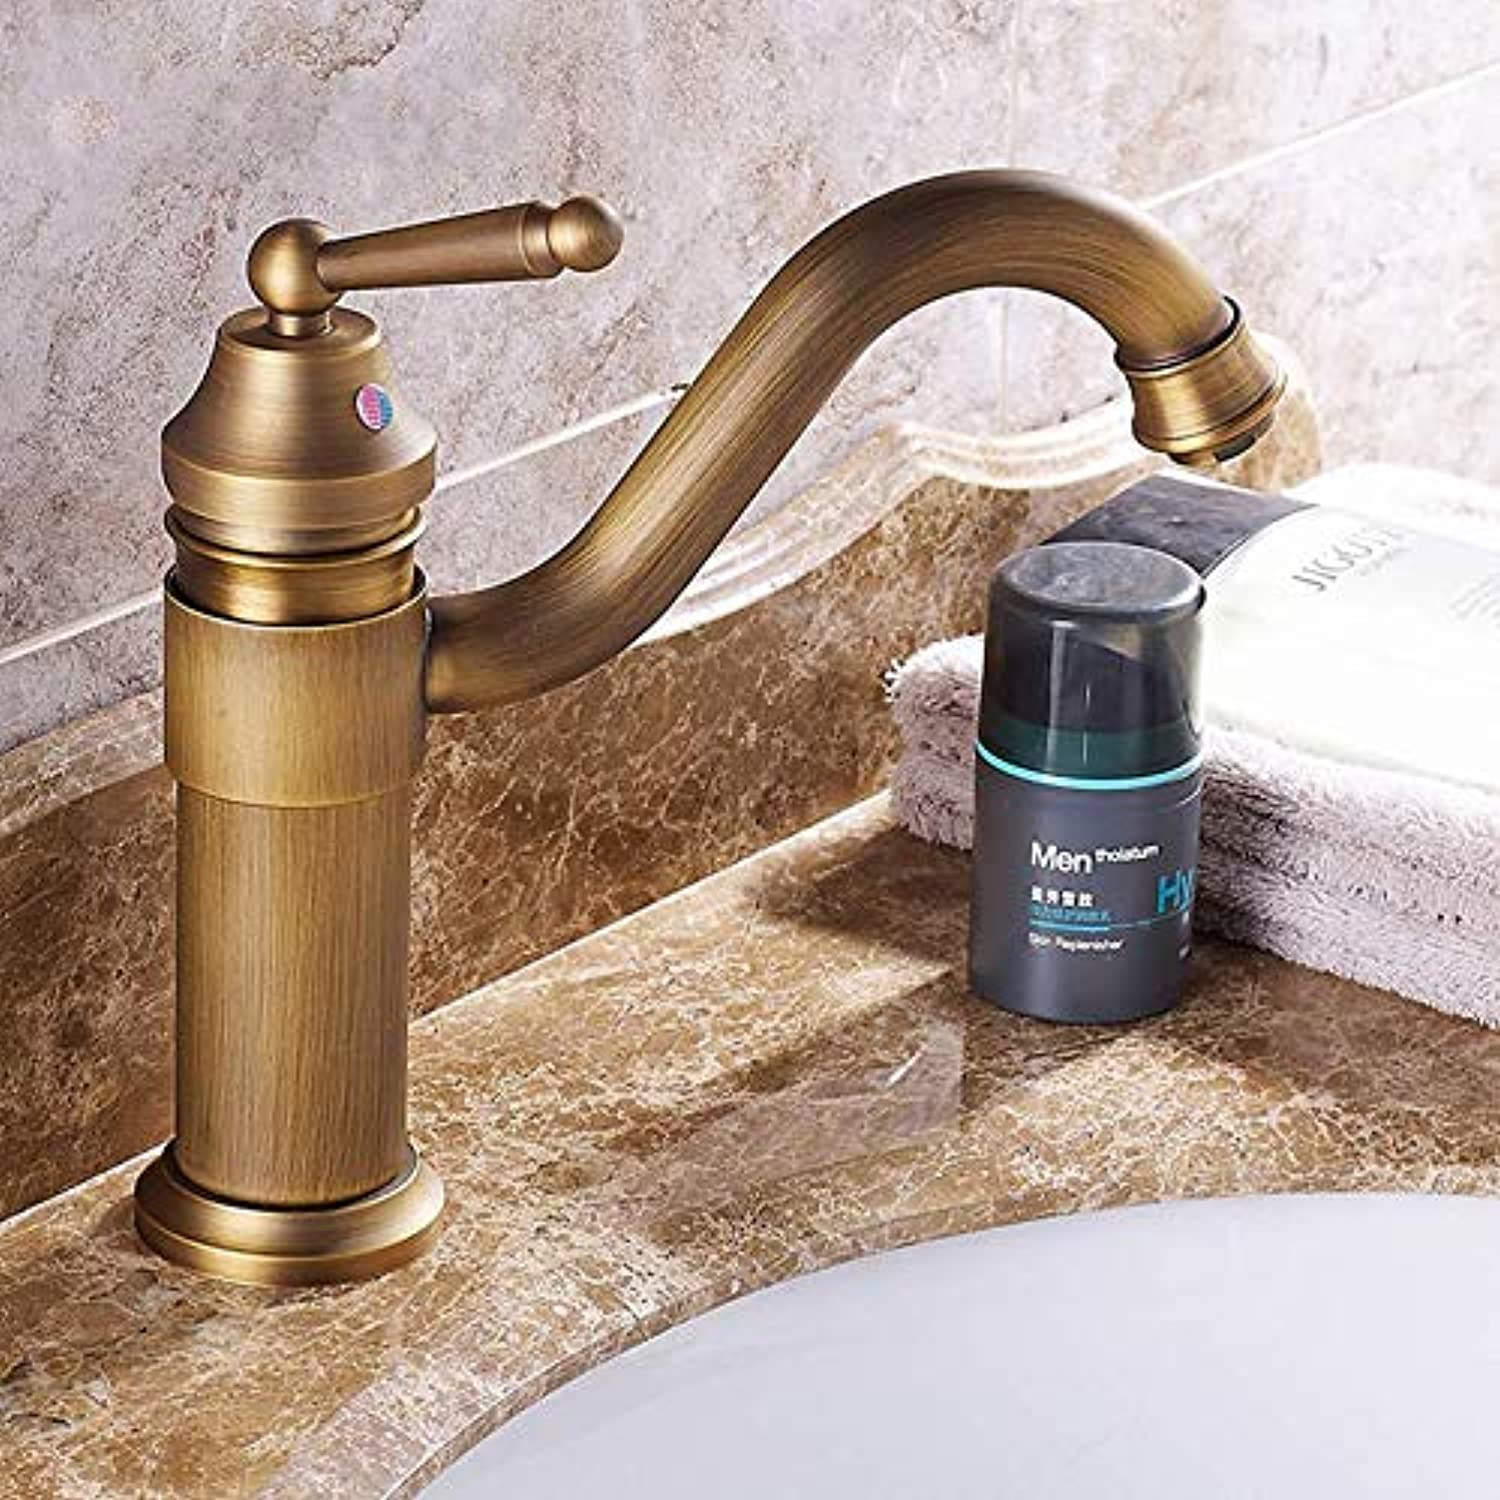 Gcbpwh tap Basin Faucets Bathroom Mixer Deck Mounted Single Handle Single Hole Bathroom redatable Faucet Brass Hot and Cold Tap